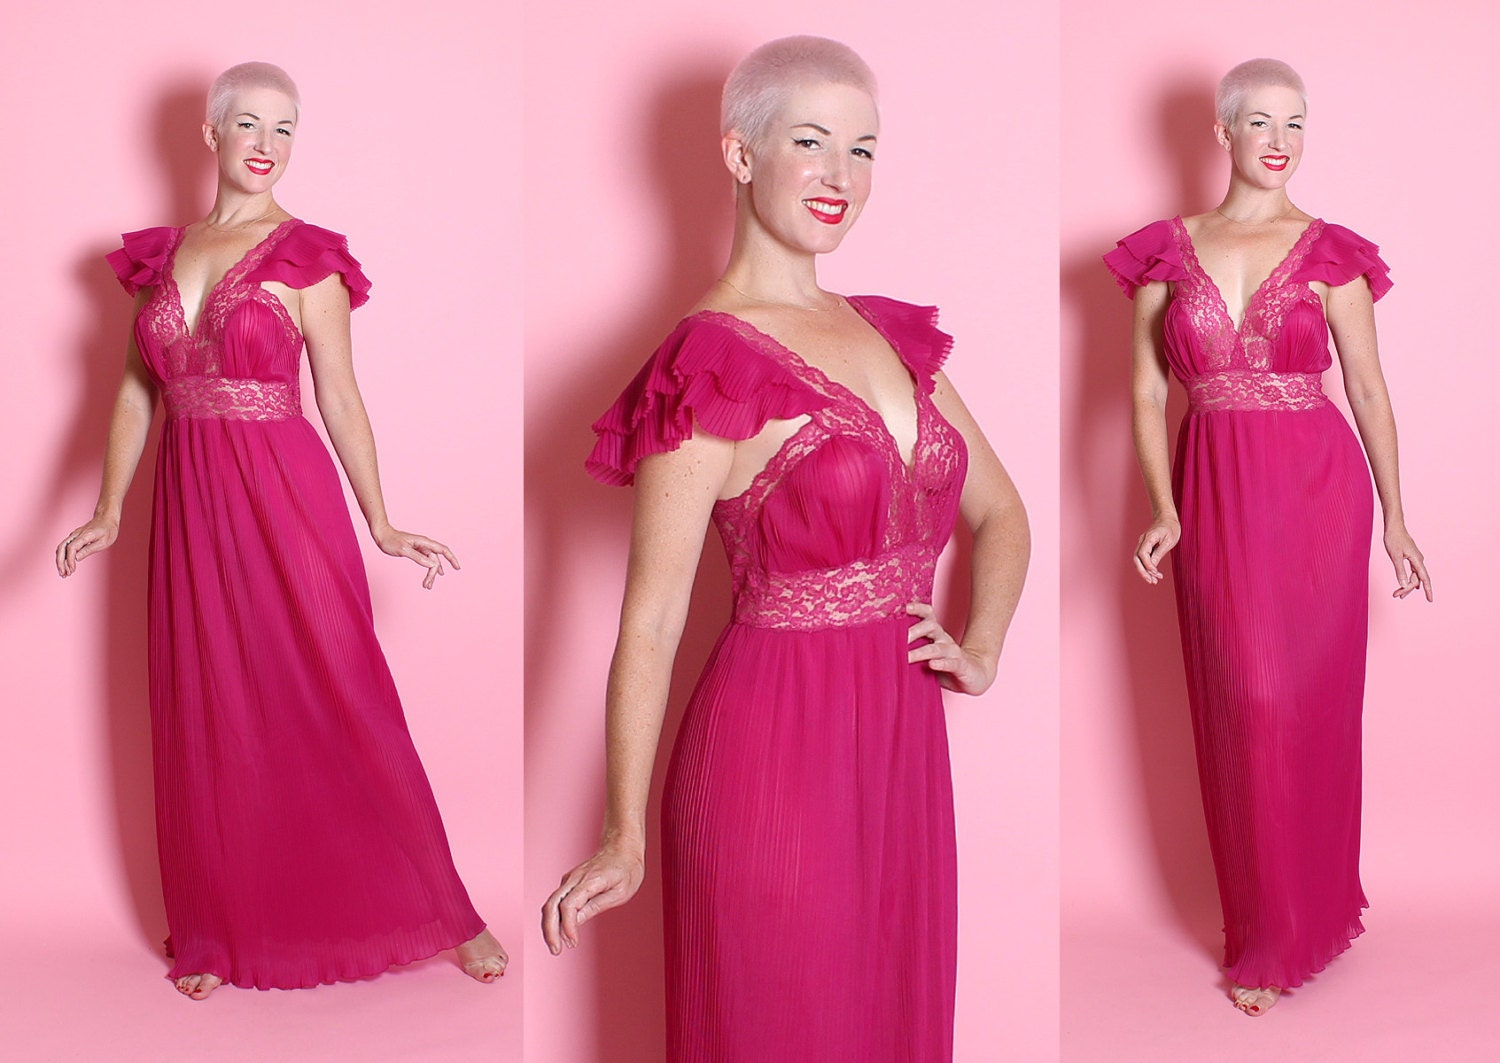 SPECTACULAR 1940's Shocking Magenta Sheer Nylon Finely Accordion Pleated Night Gown w/ Shelf Bust & Lace Details By Beau Monde - Size M to L